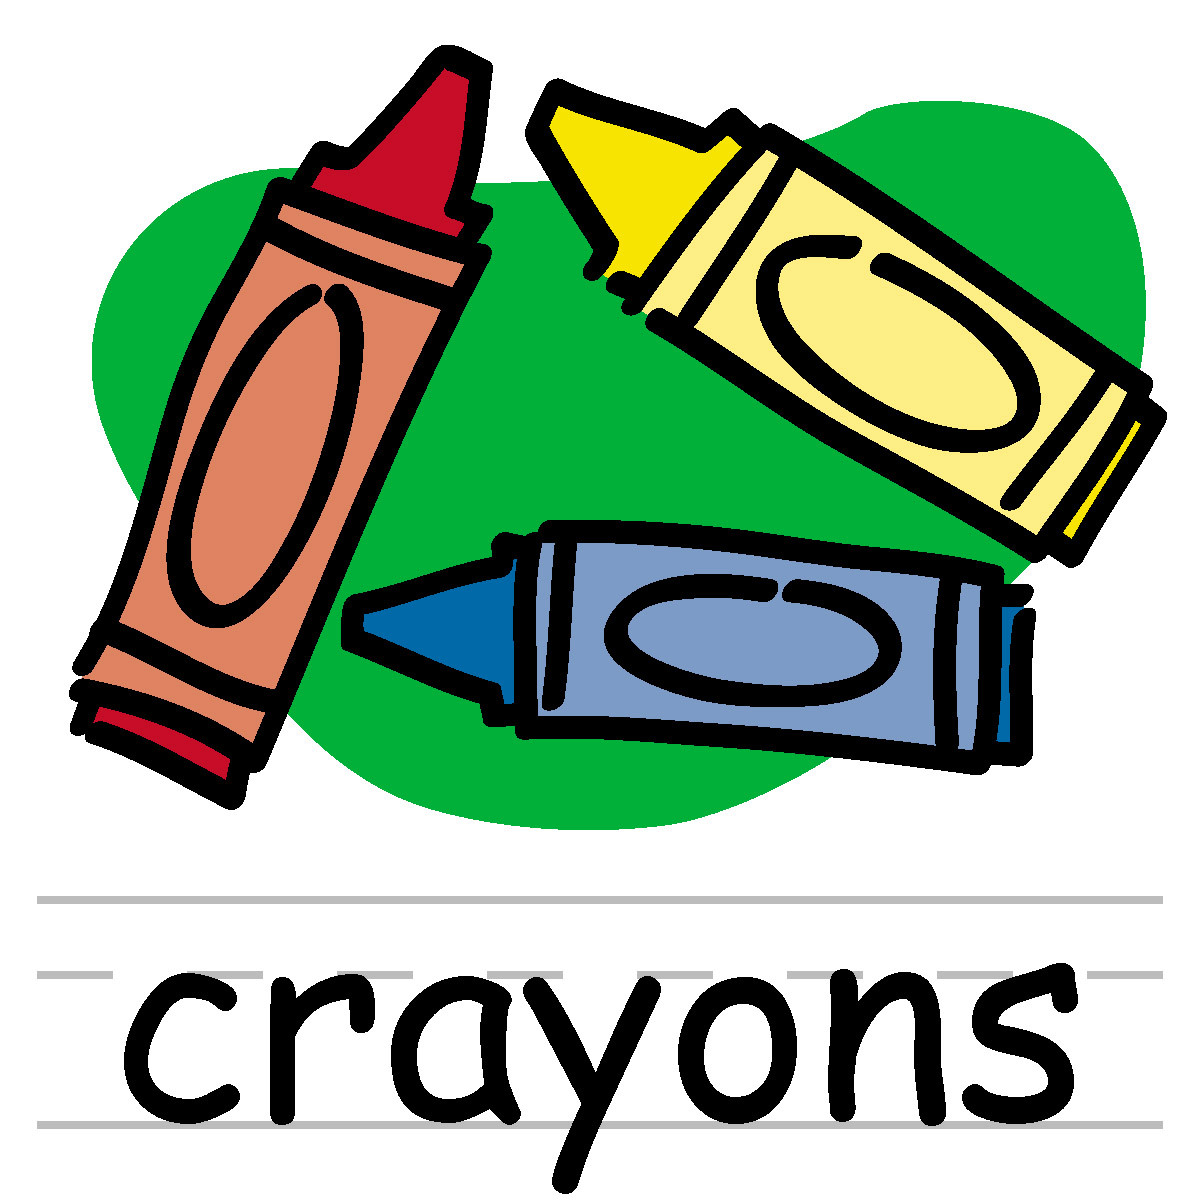 1200x1200 Crayon Clipart Black And White Free Images